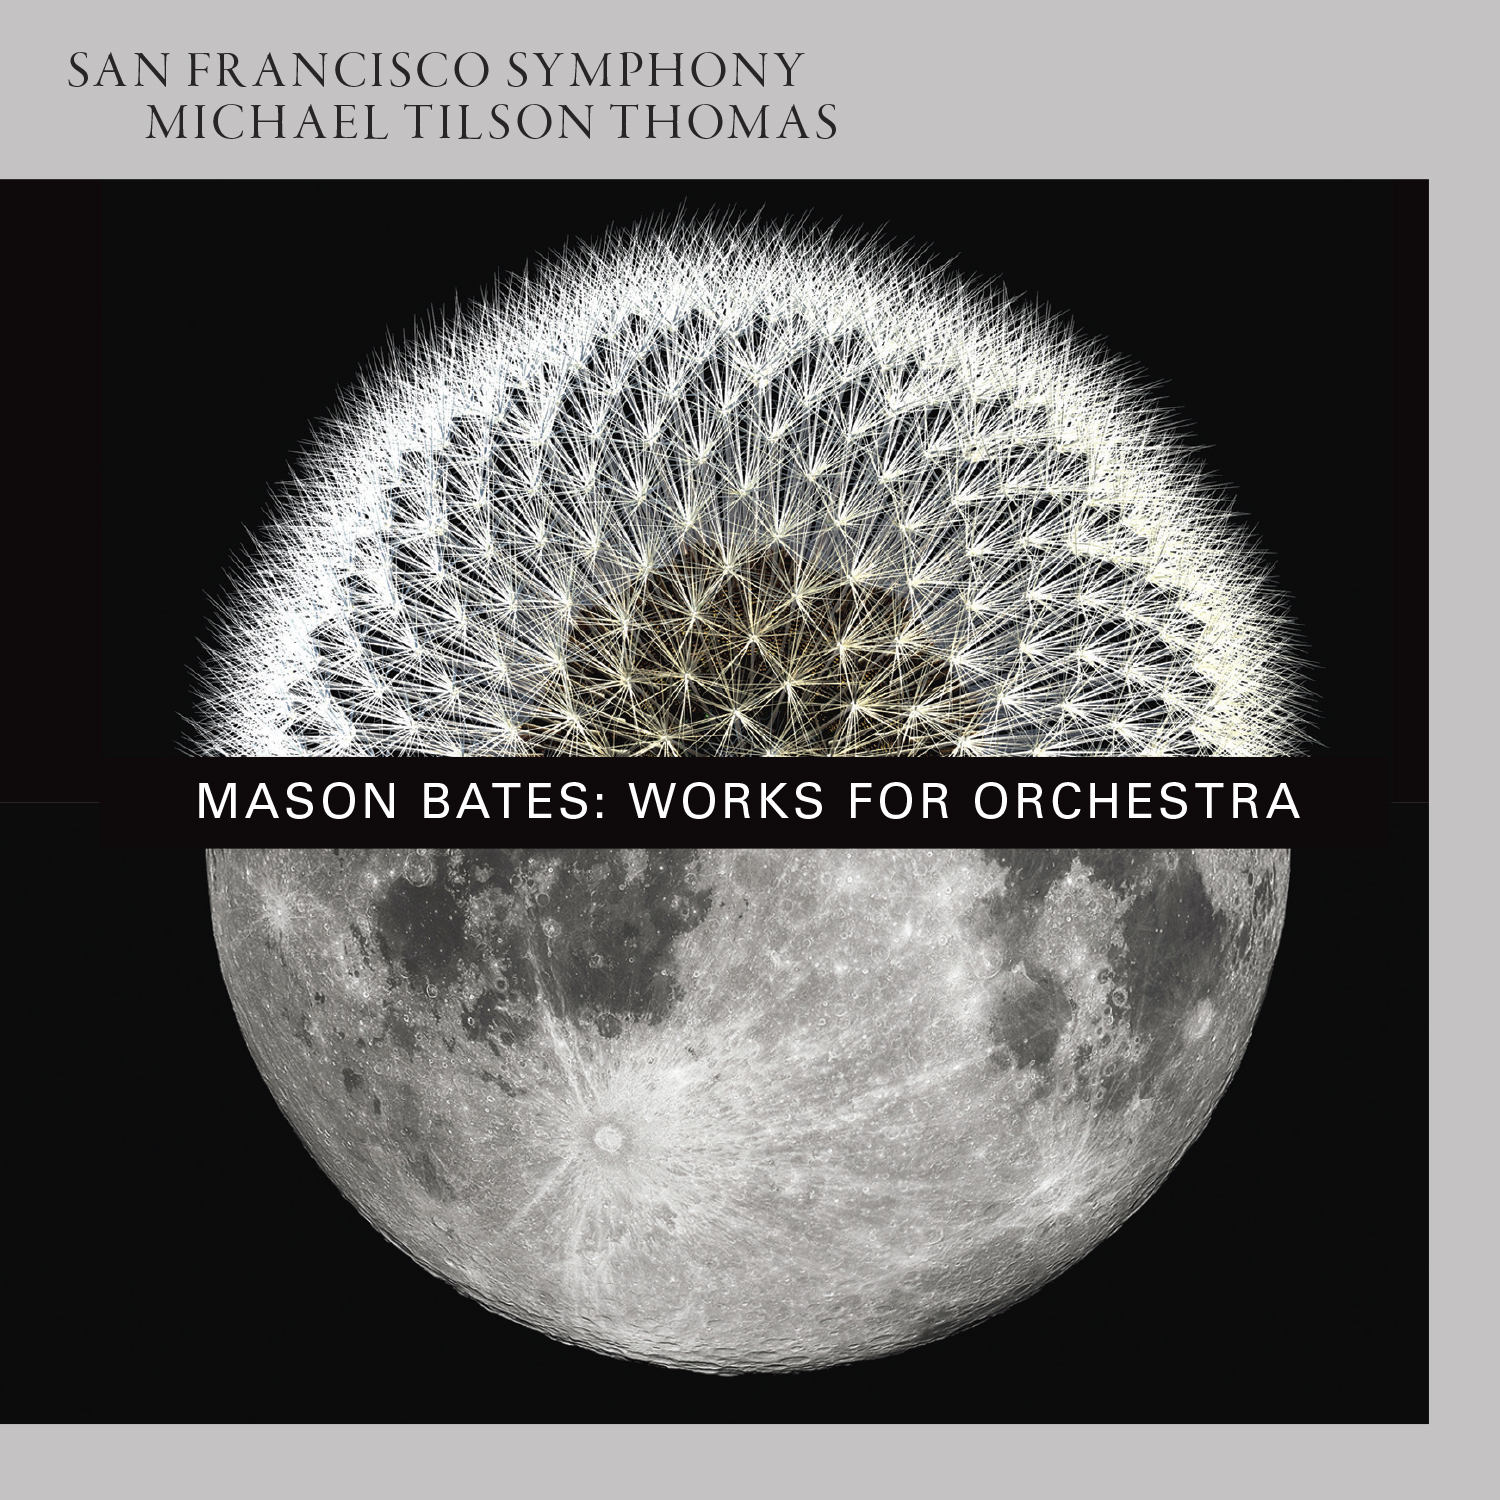 San Francisco Symphony - Mason Bates: Works for Orchestra cover image